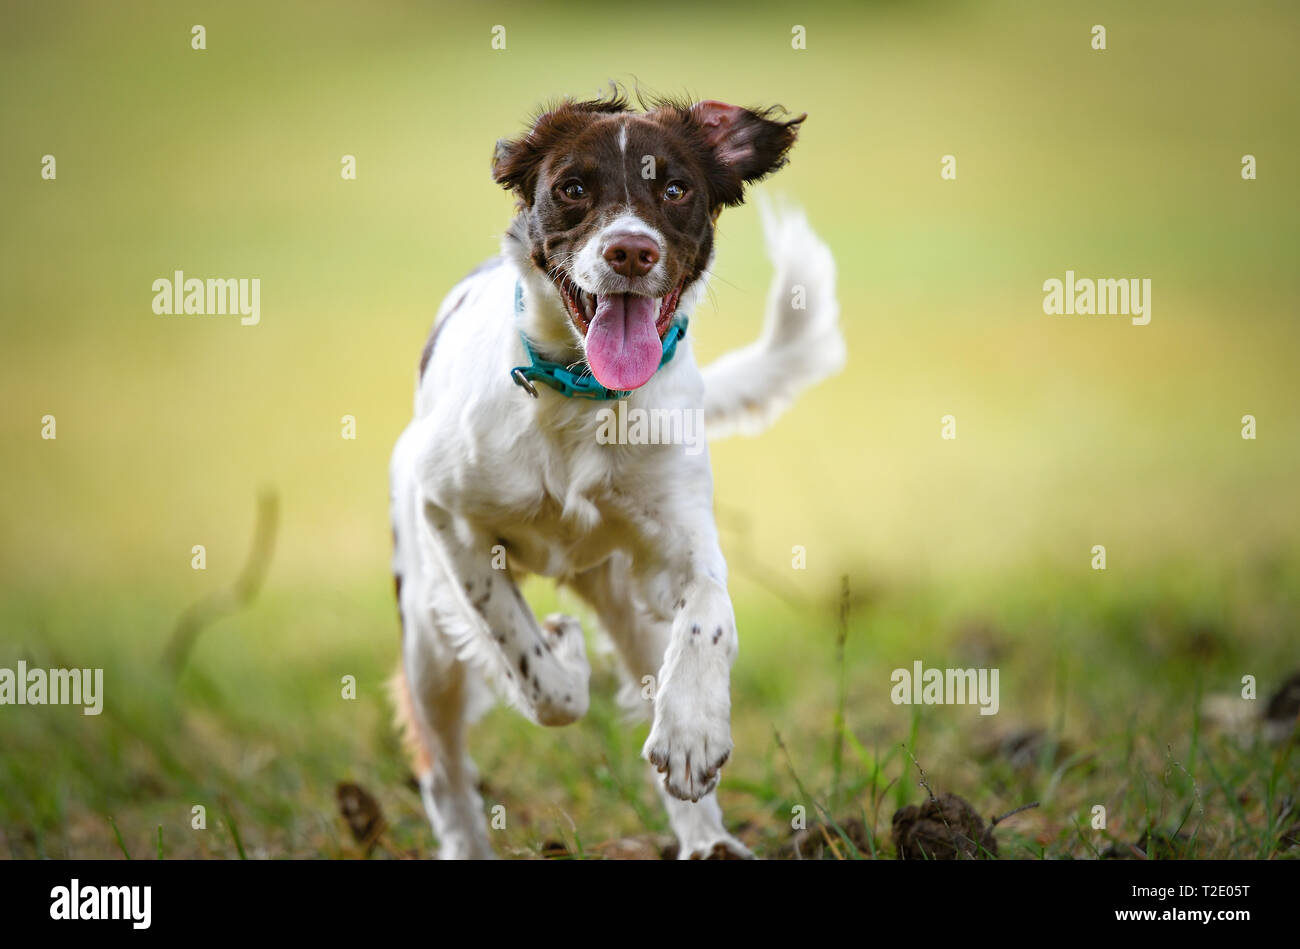 A young English Springer Spaniel looking straight to camera with tongue out caught in mid run against a green clear background with copy space. Stock Photo